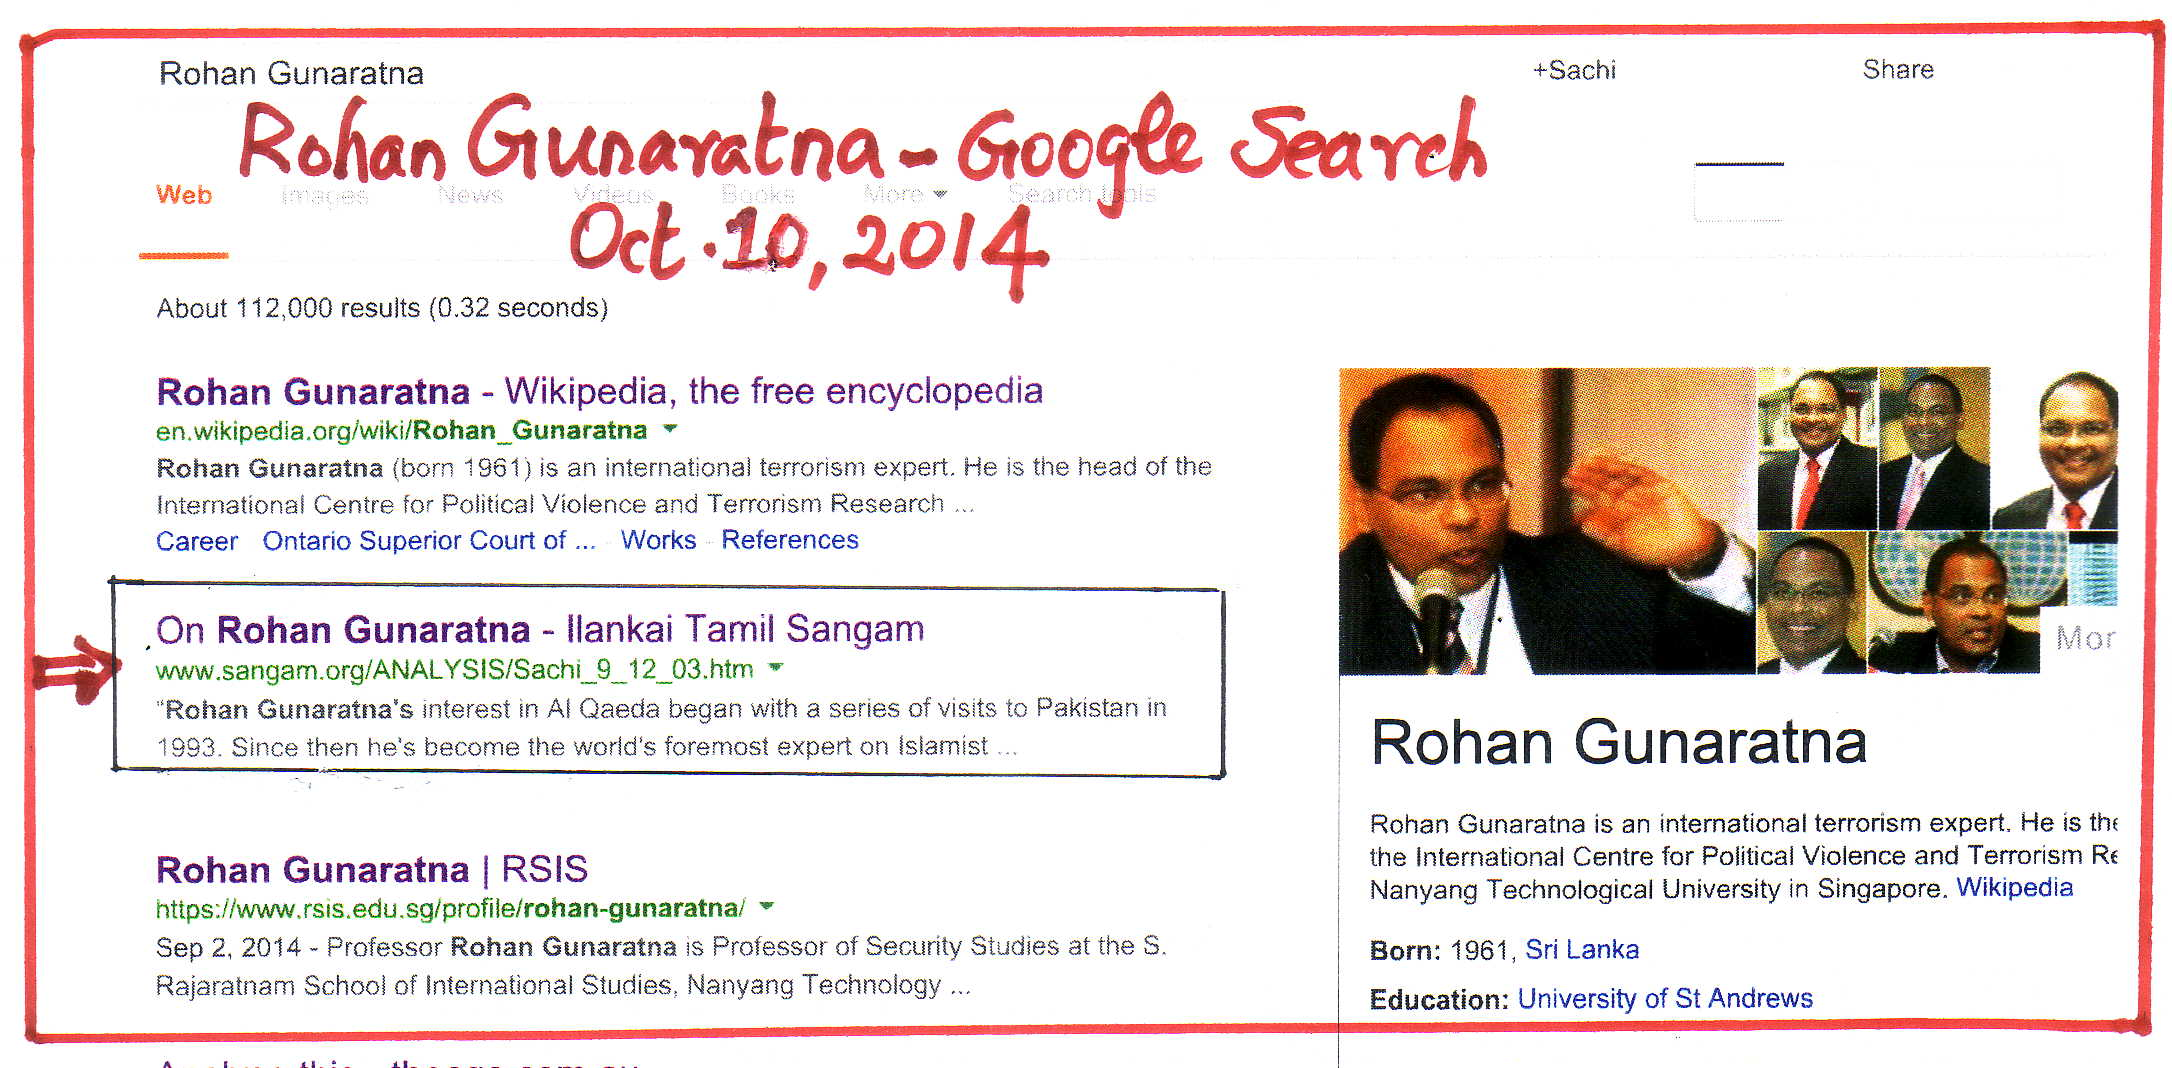 Rohan Gunaratna Google Search Oct 10 2014